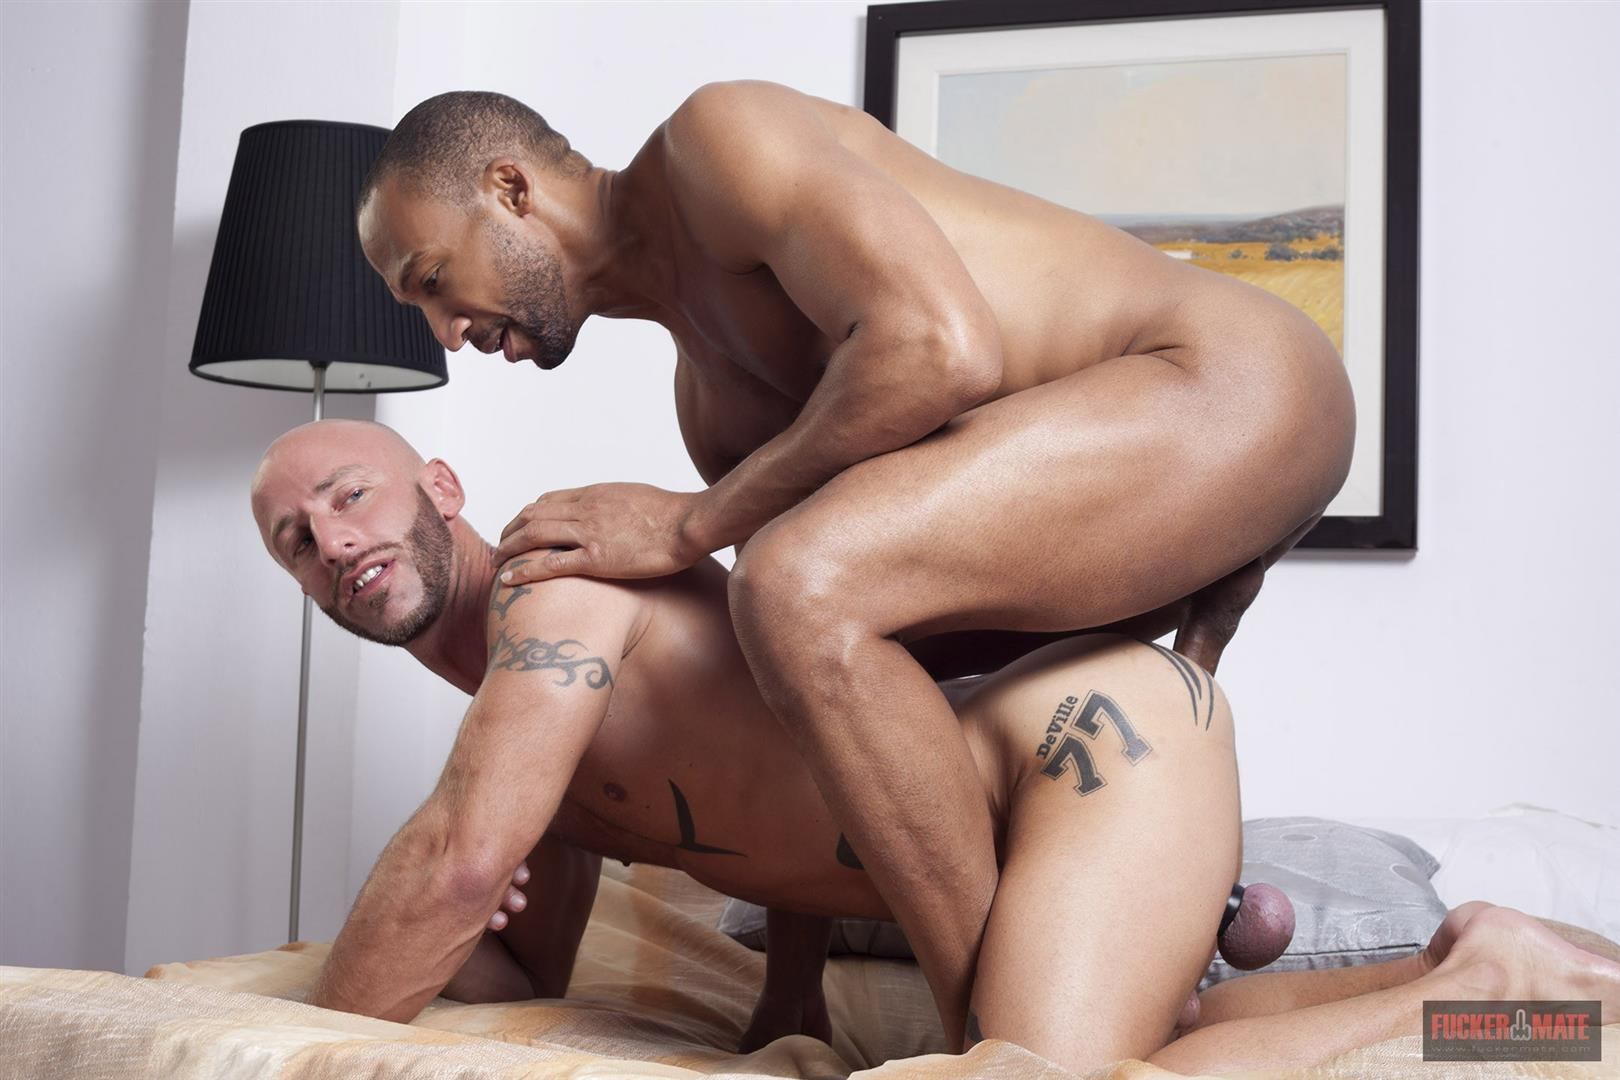 Fuckermate Buster Sly and Aymeric Deville Interracial bareback fucking Amateur Gay Porn 09 Interracial Bareback Breeding With Buster Sly and Aymeric Deville